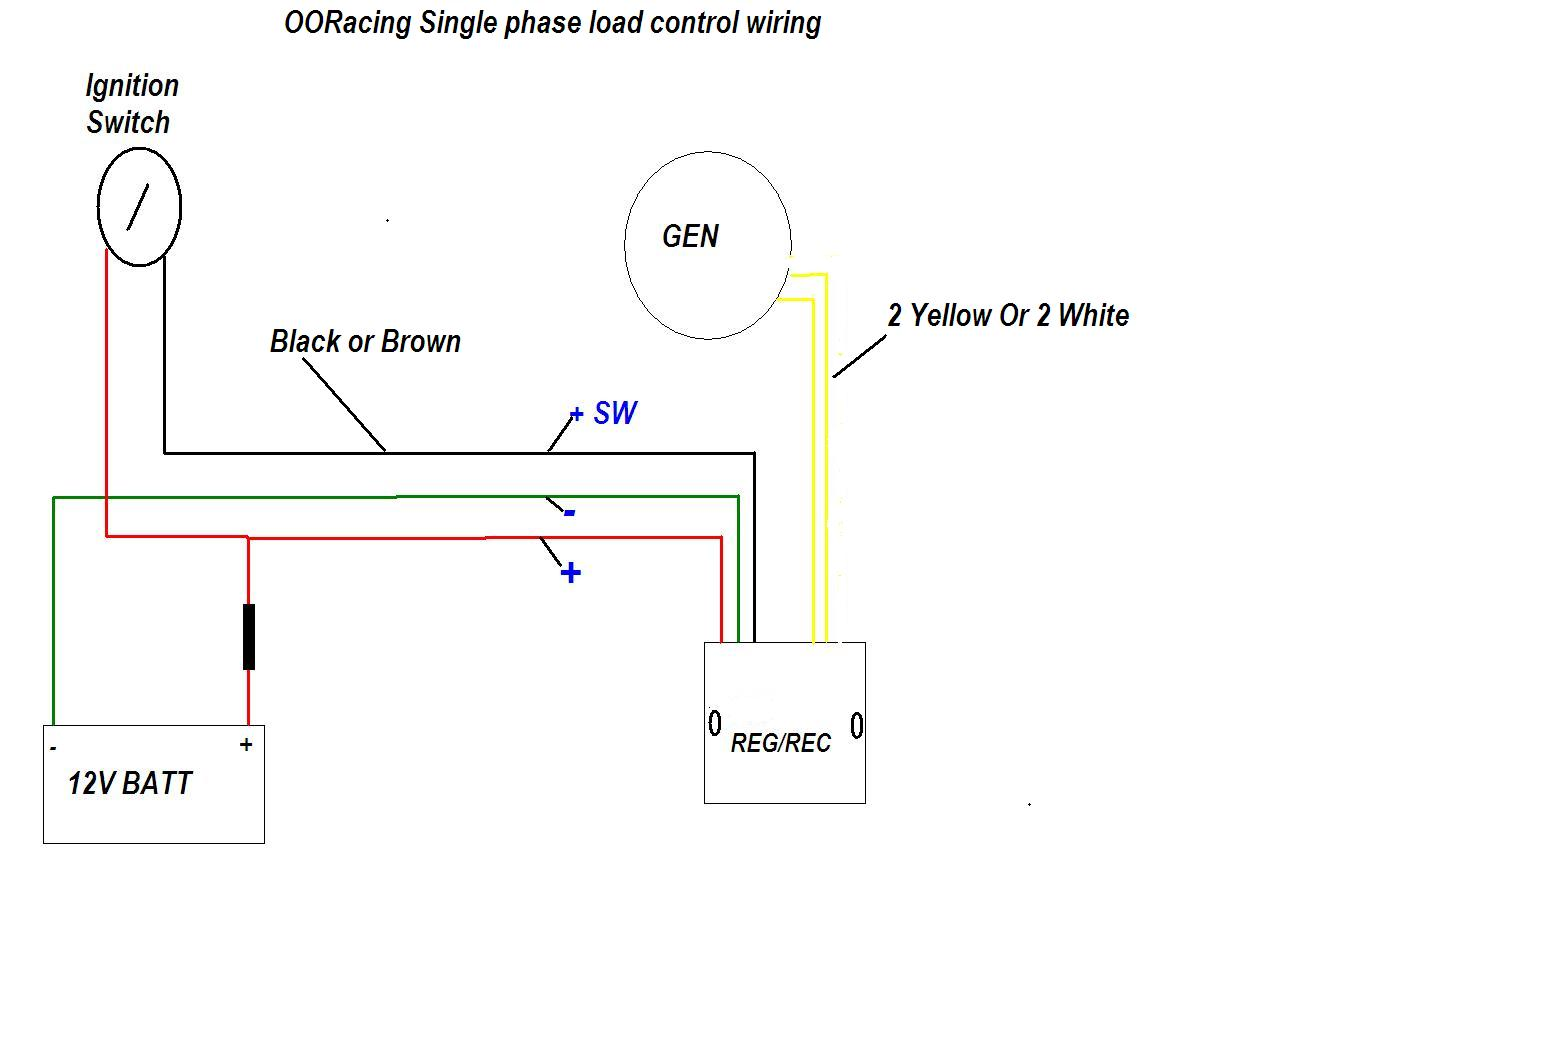 Single_phase_50W_Gen_wiring?resize\=665%2C443\&ssl\=1 diagrams 800584 lifan 90cc wiring diagram tbolt usa tech ssr 125 pit bike wiring diagram at mifinder.co